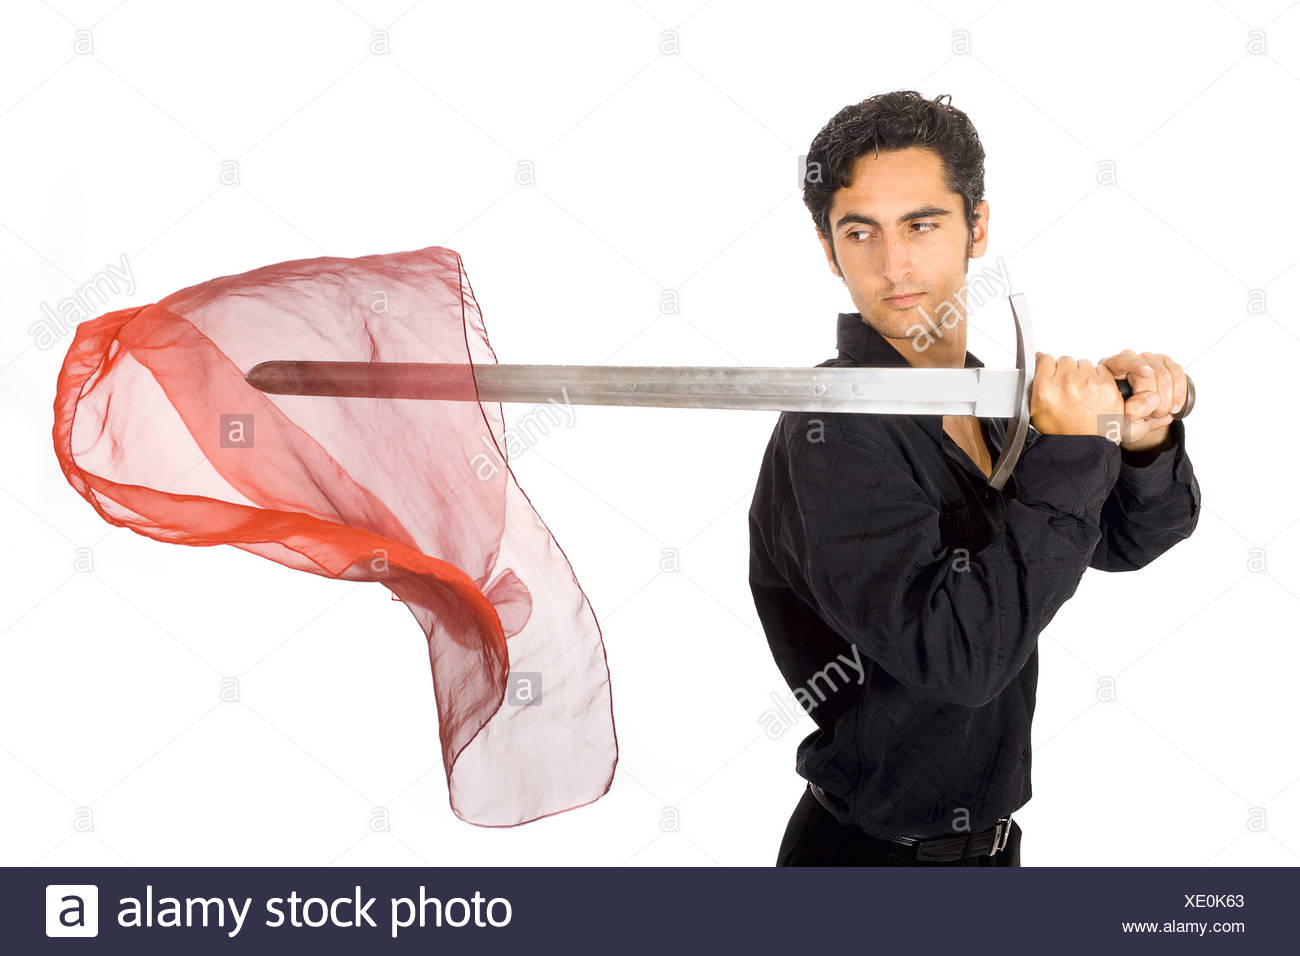 Man with sword and neckerchief - Stock Image